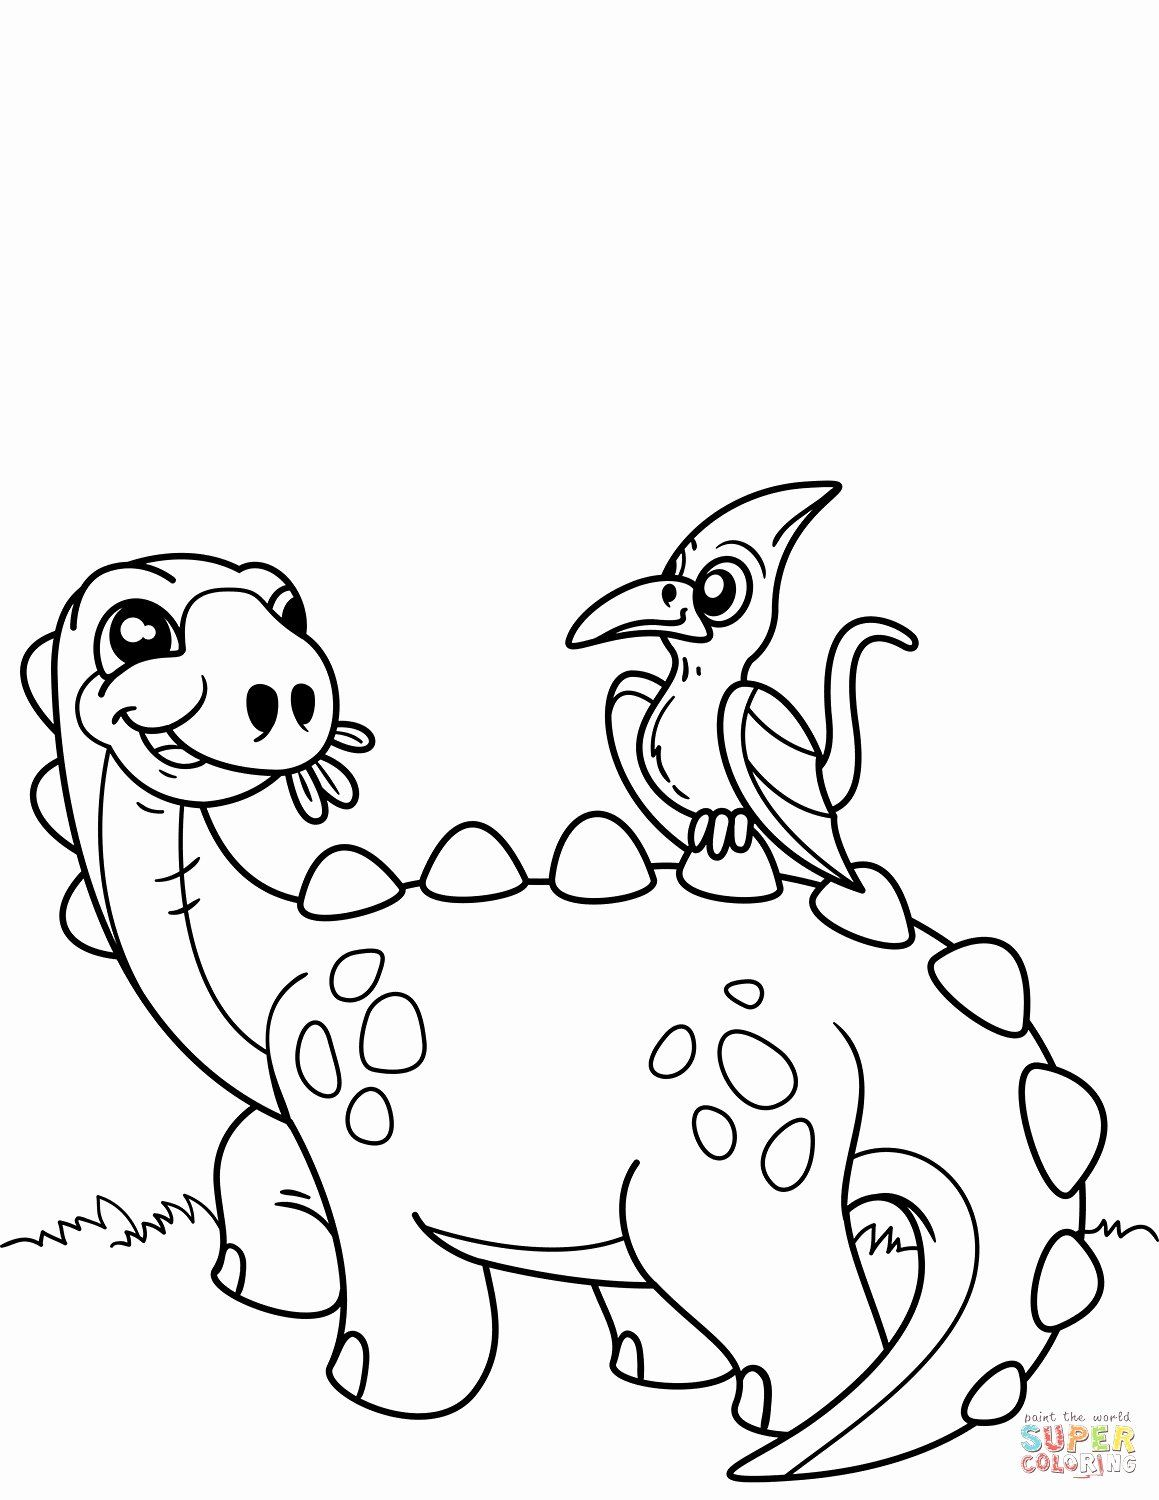 Dinosaur Drawing Book In 2020 Dinosaur Coloring Pages Dinosaur